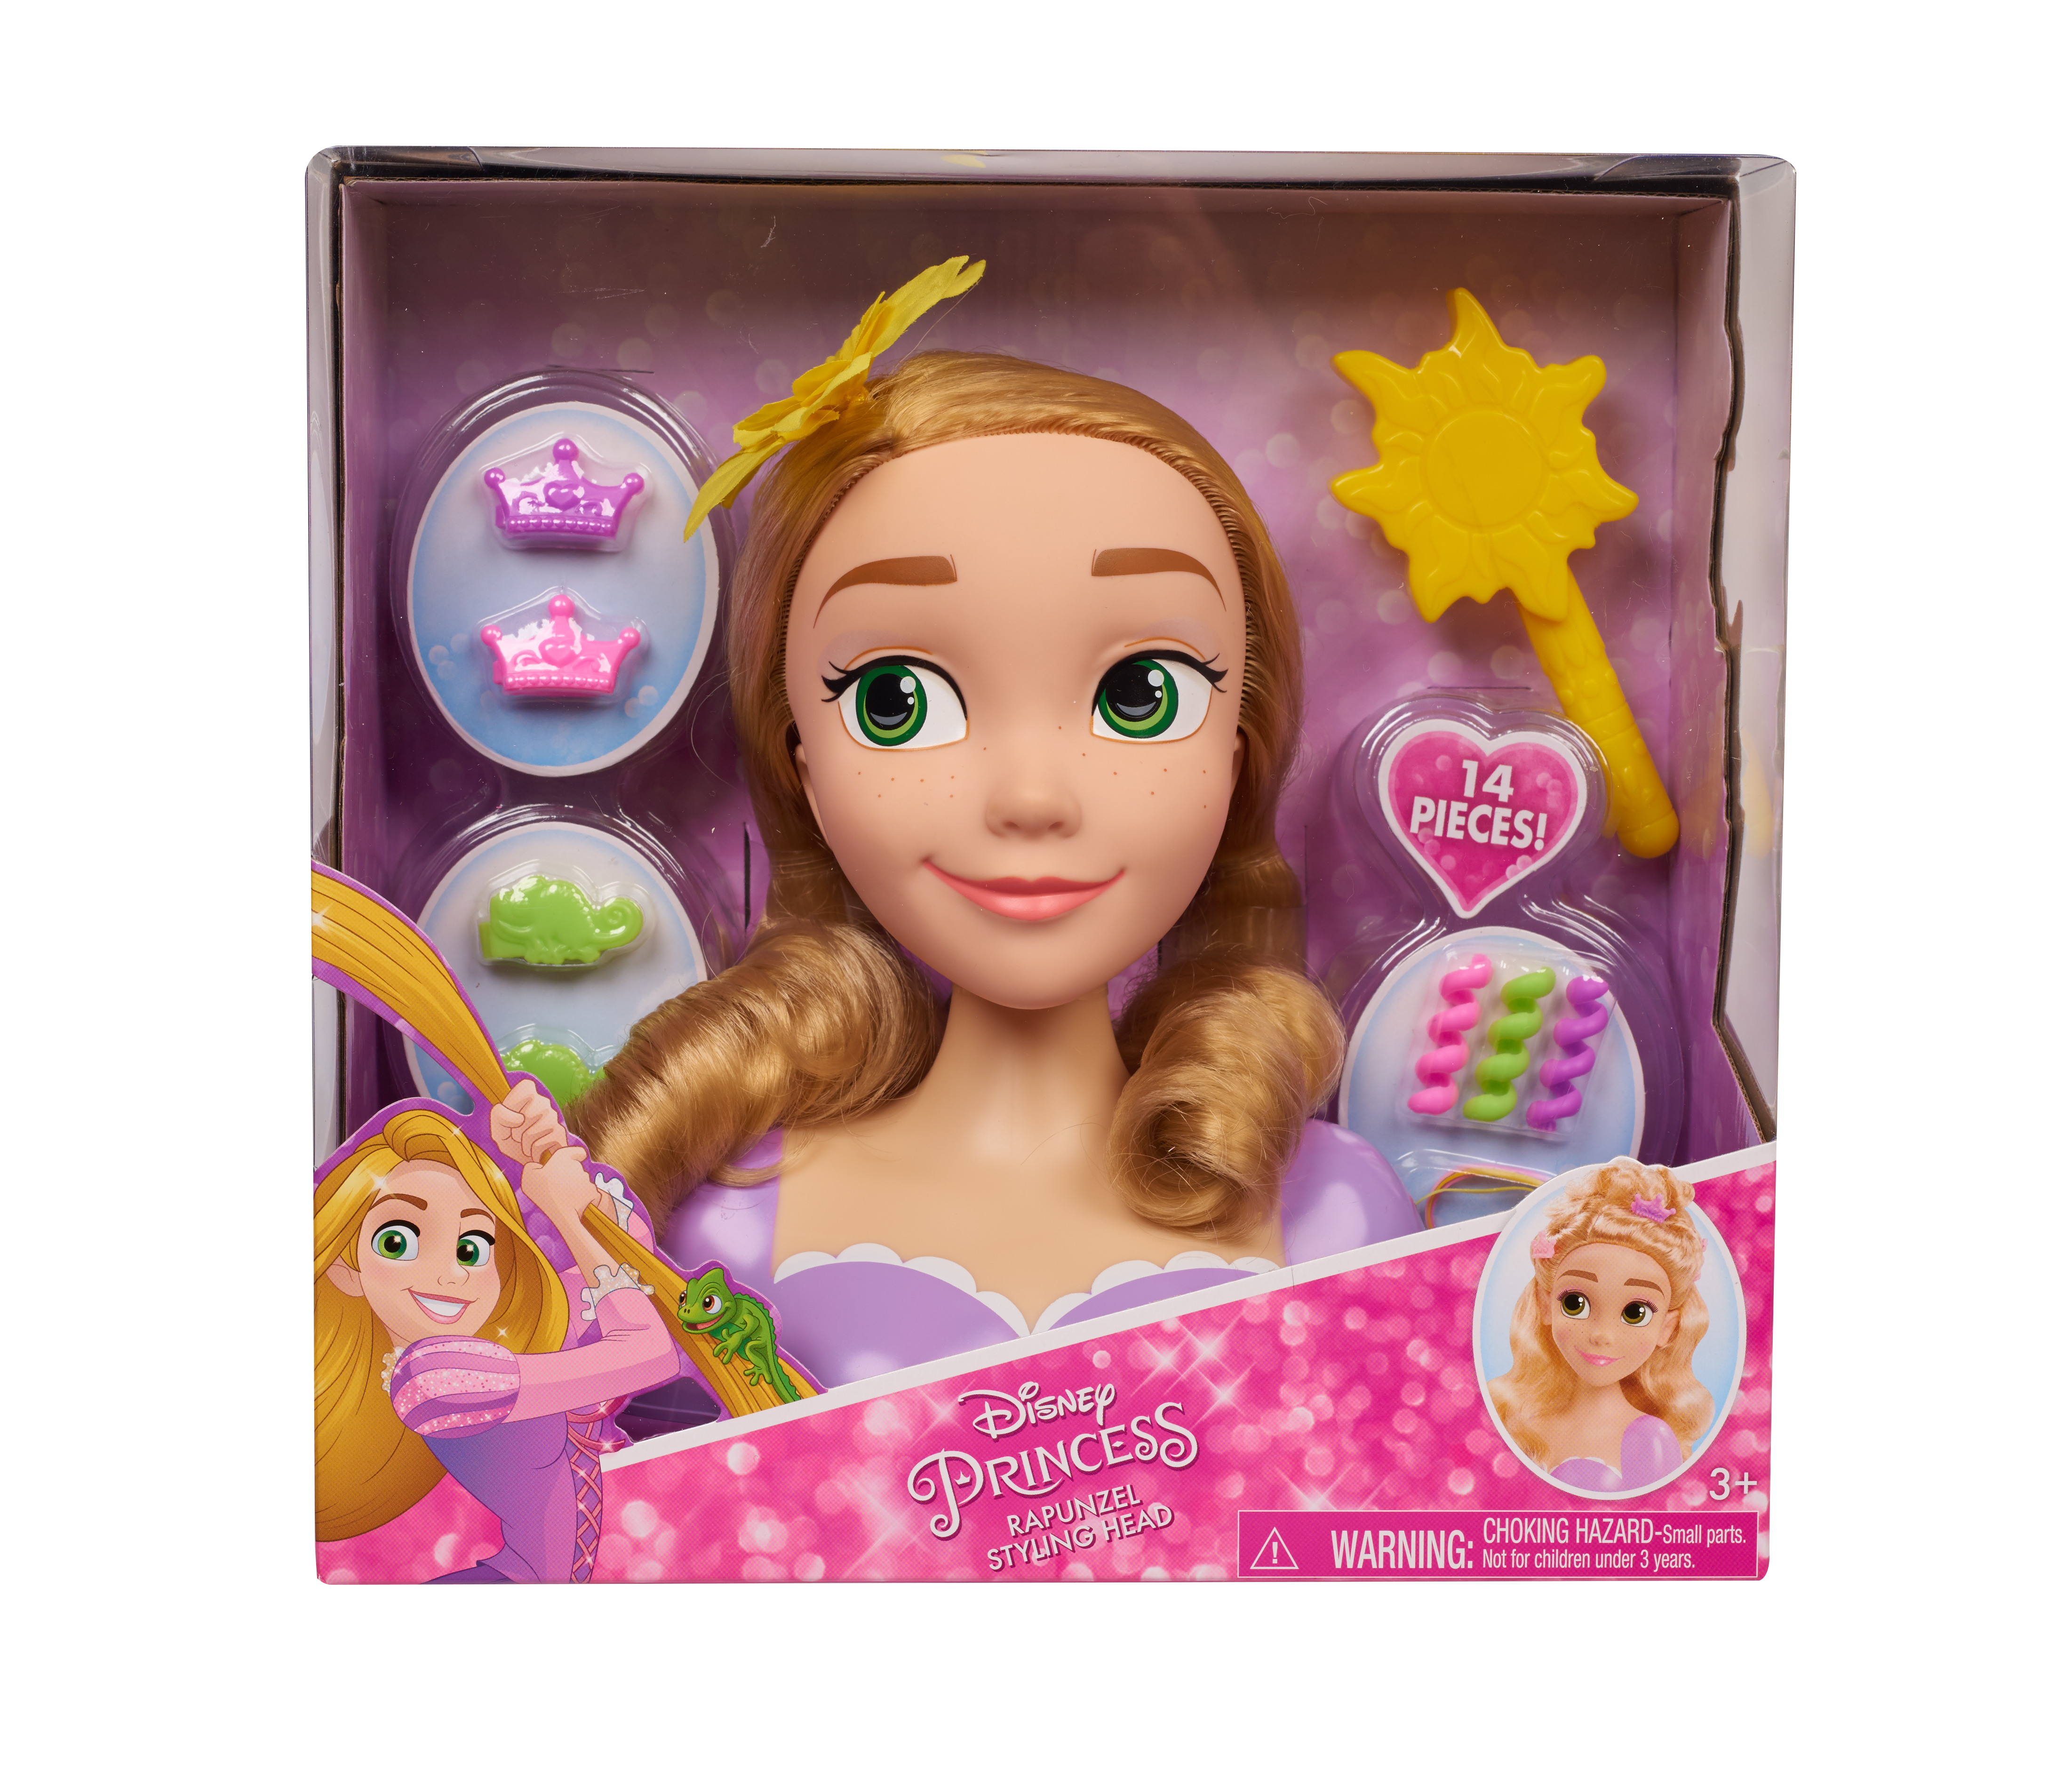 Disney Princess Rapunzel Styling Head by Just Play